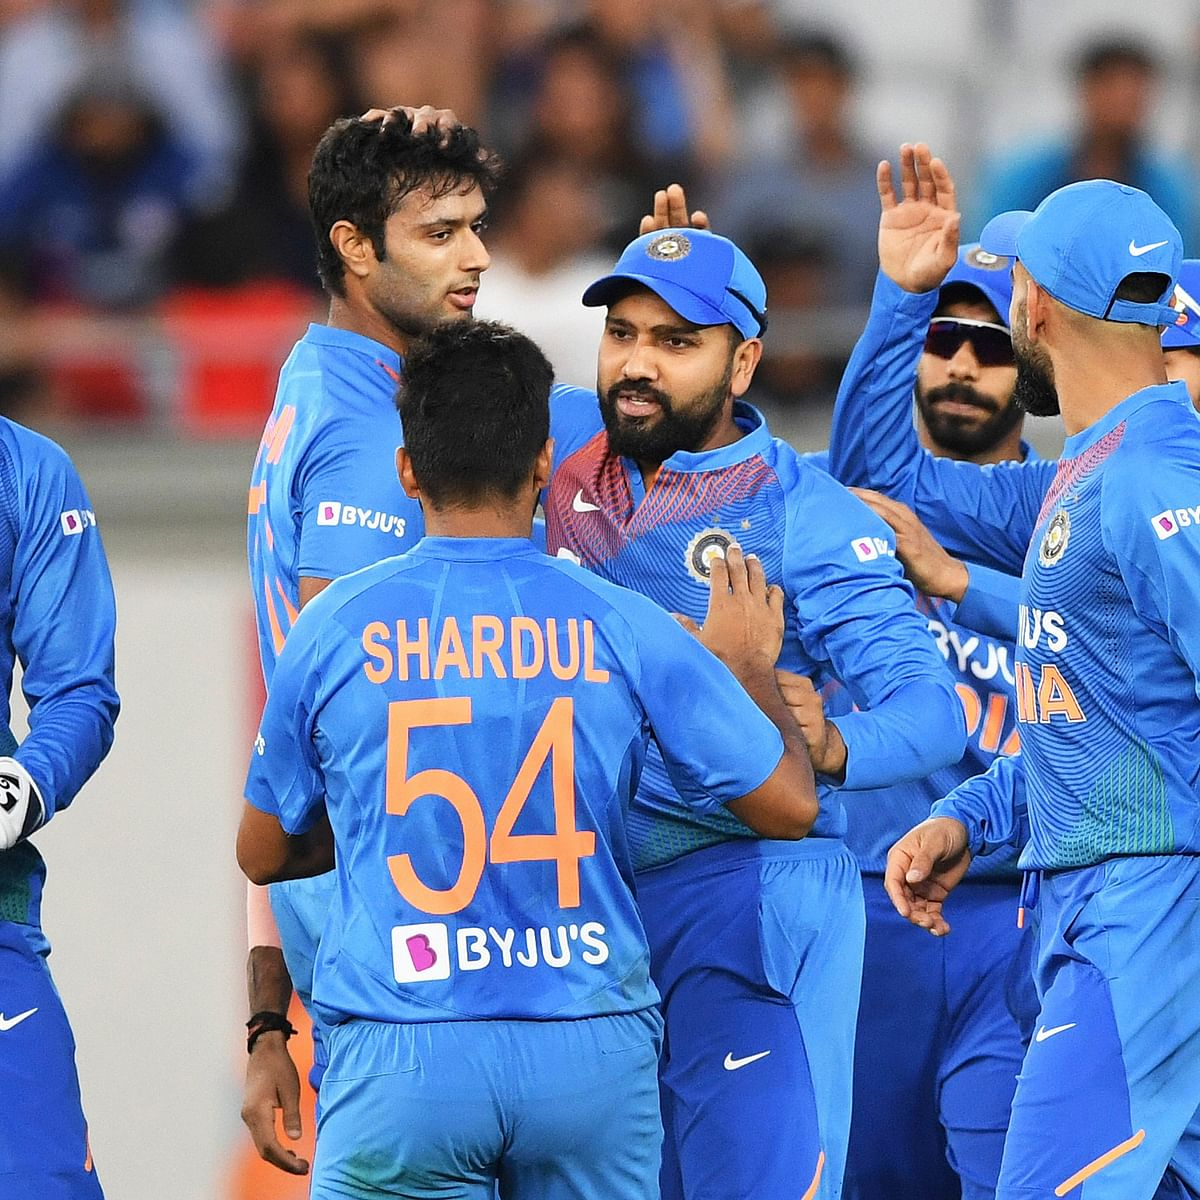 Shreyas Iyer, KL Rahul Power India To Six-Wicket Win In T20 Opener Against New Zealand